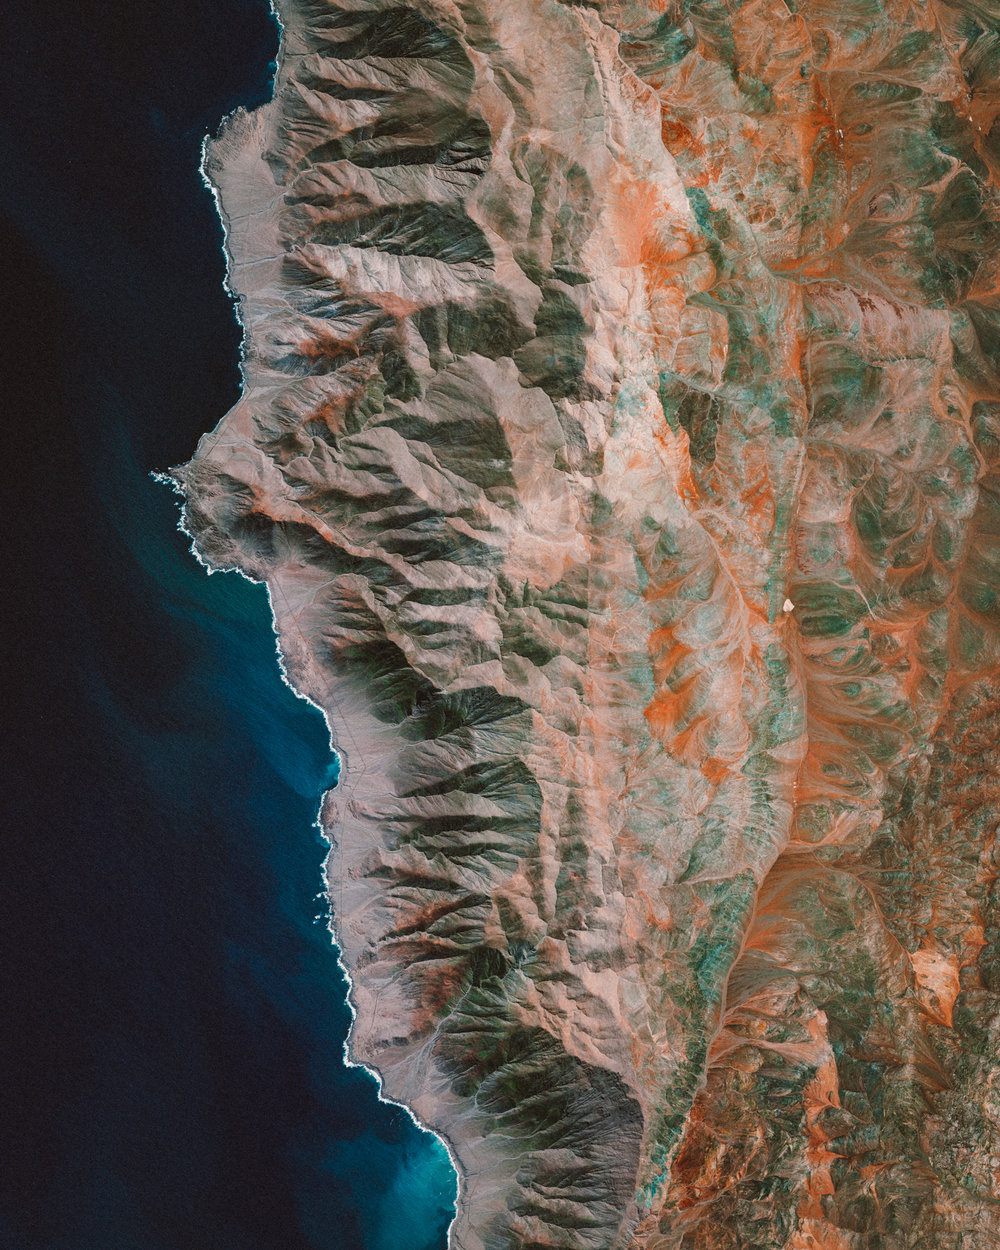 "Check out this amazing Overview of the Chilean Coast Range, which runs along the Pacific coast of Chile. It extends 1,900 miles (3,100 km) from north to south, and this image captures a section near the city of Antofagasta. The highest point in the Chilean Coast Range is Cerro Vicuña Mackenna, which peaks at 10,217 feet (3,114 m).  24°44'14.9""S, 70°25'37.8""W  Source imagery: DigitalGlobe"